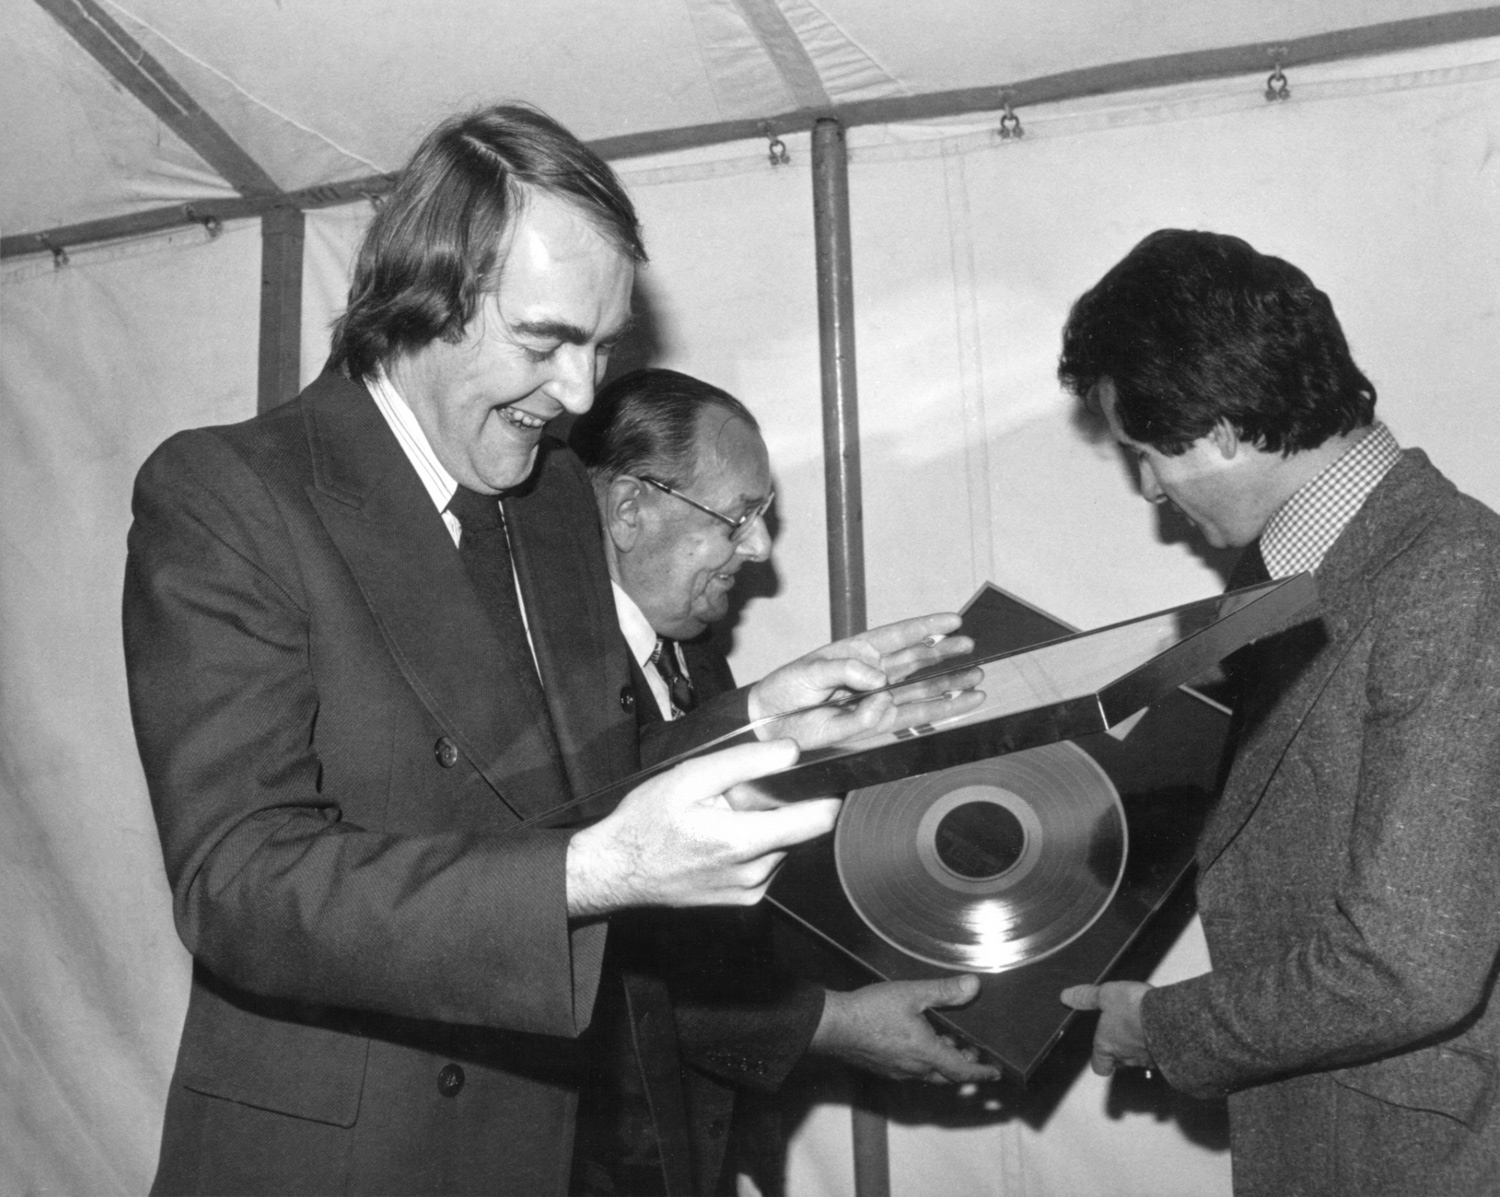 Kevin receiving a gold disc for ten years of work with The Yetties. Bob Arnold (aka Tom Forrest of The Archers) is in the background